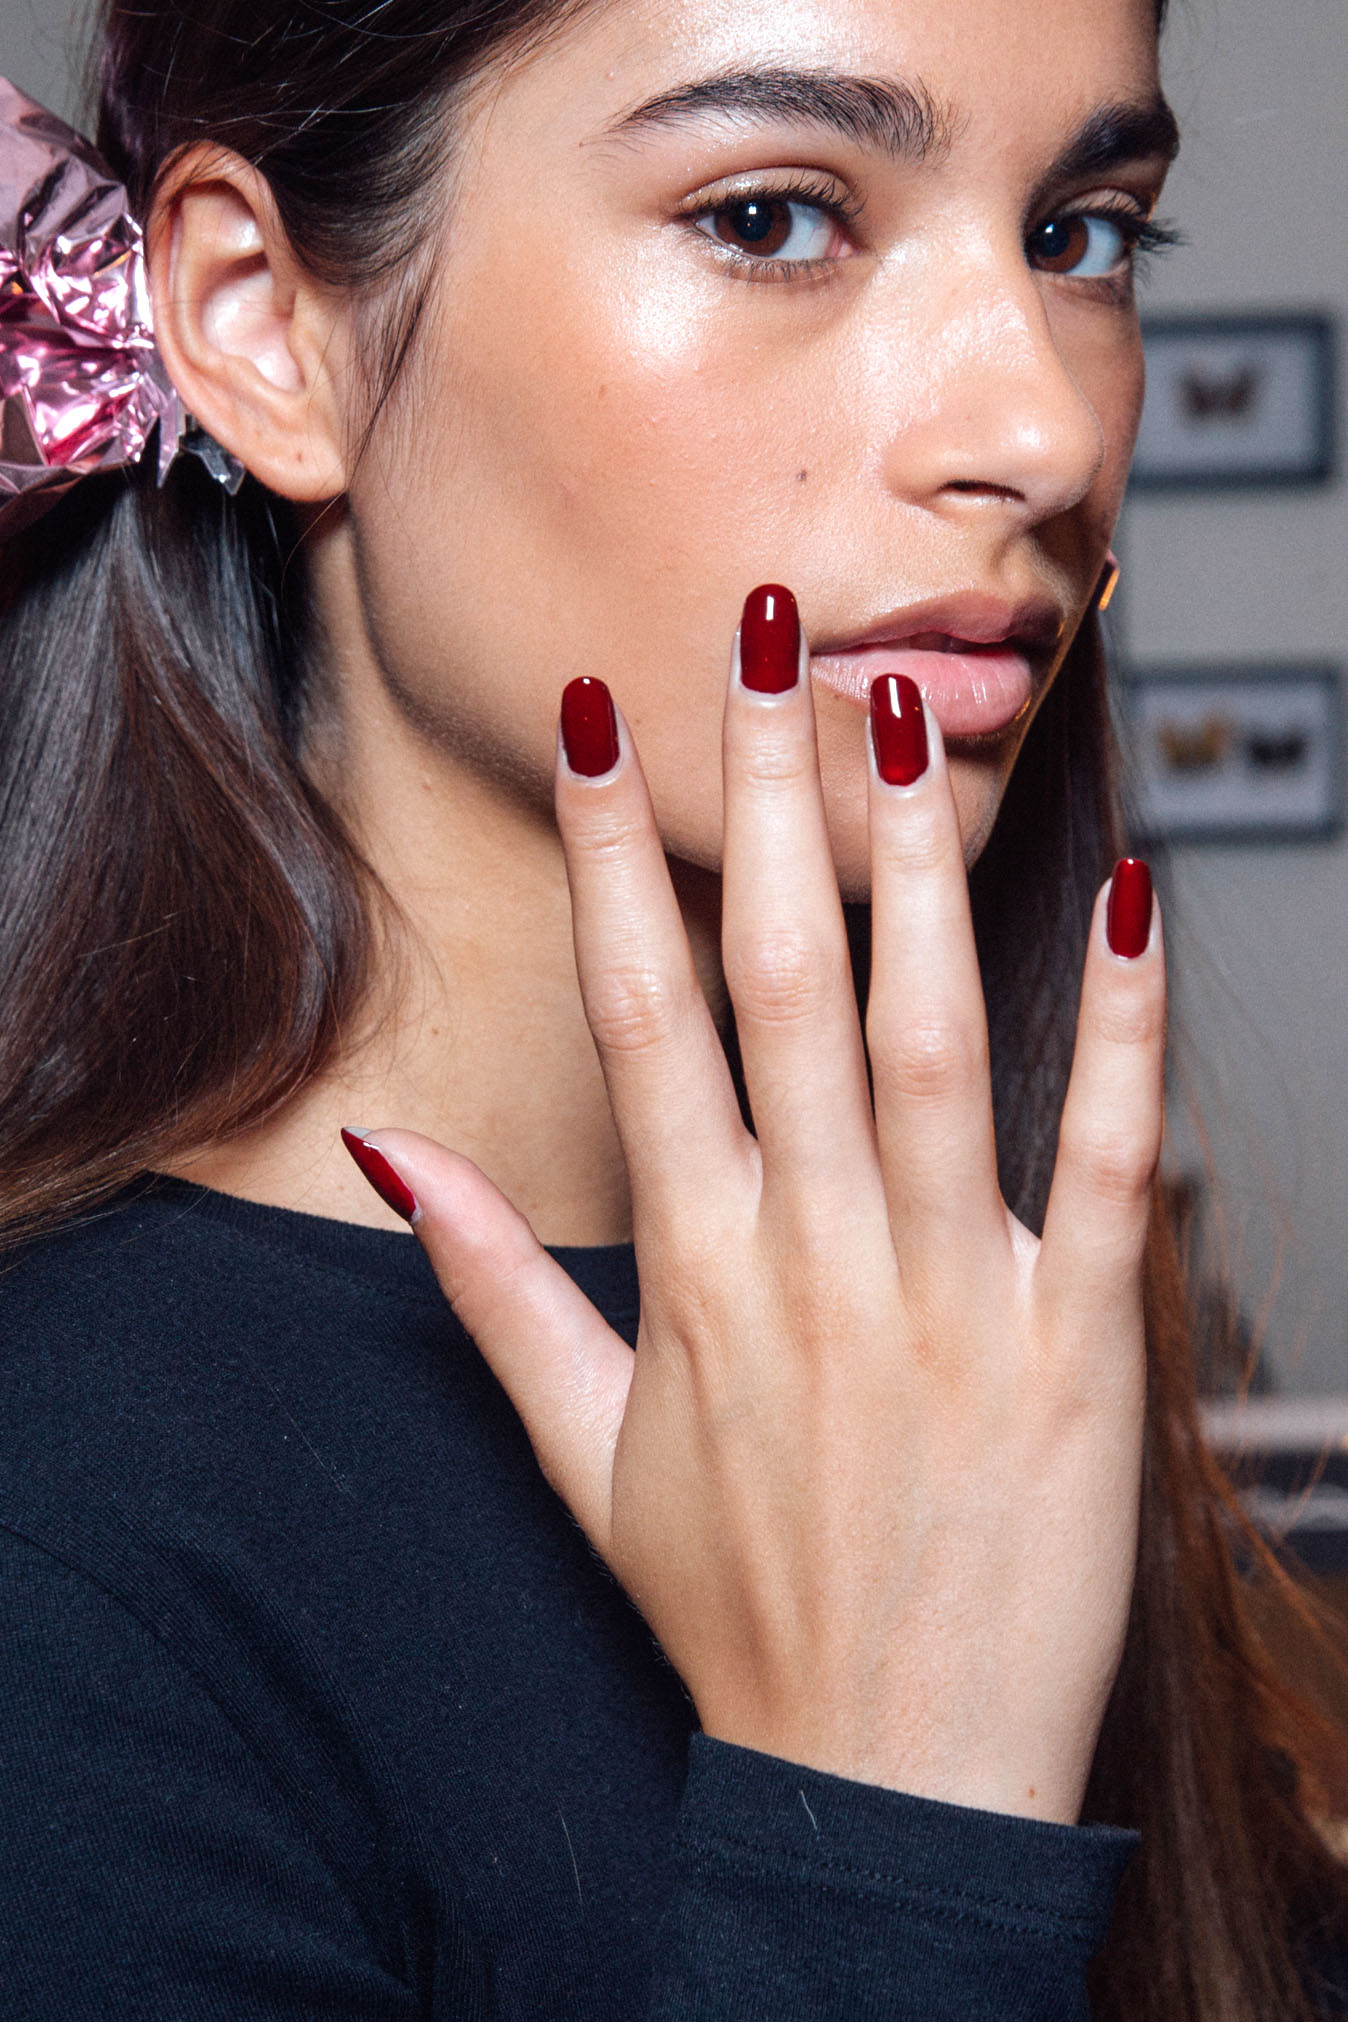 Nails at New York Fashion Week: The Best Manicures We'veSeen foto